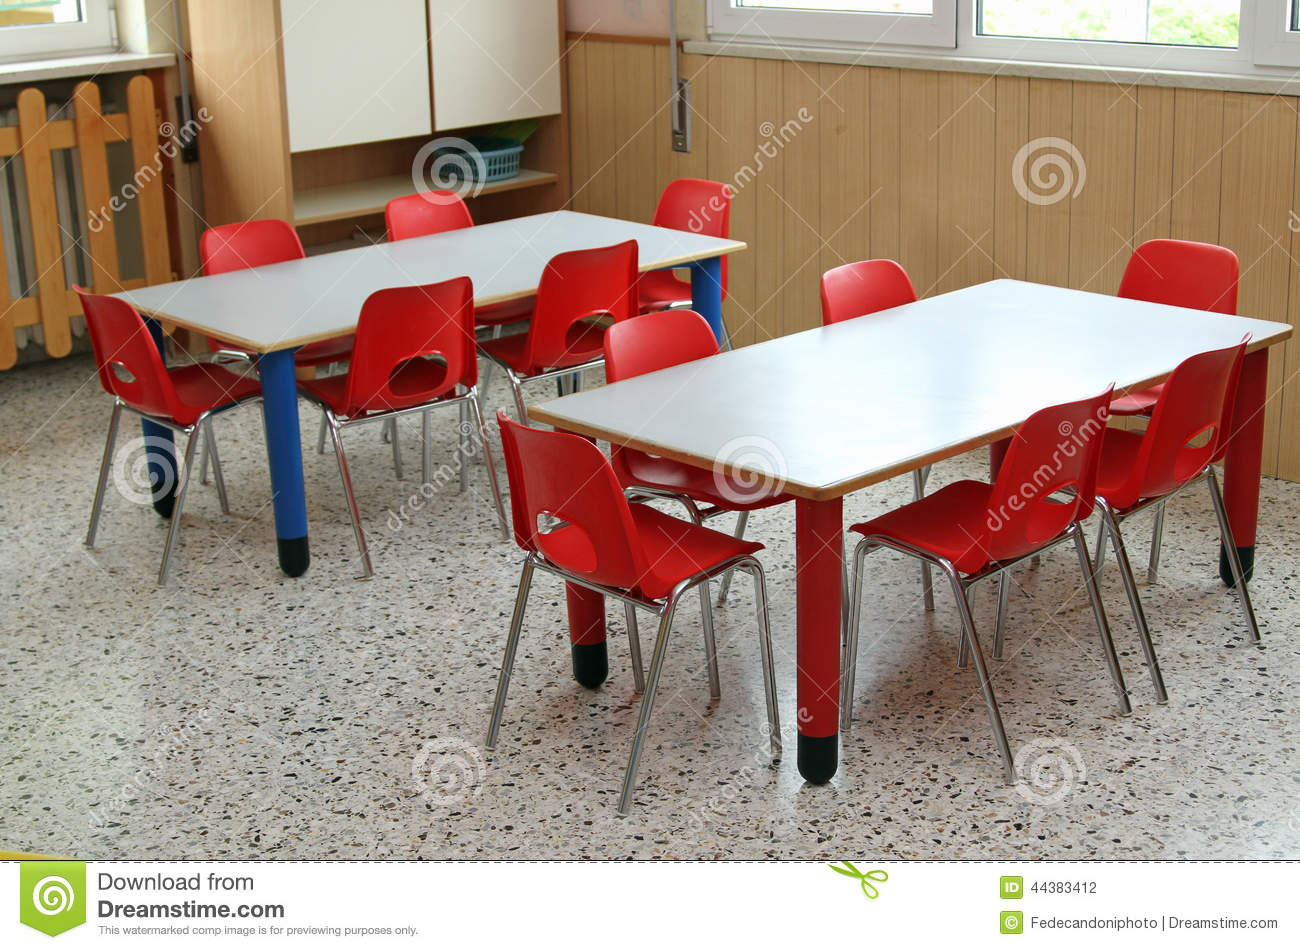 Furniture clipart small table Table Chairs Kindergarten Classroom Clipart